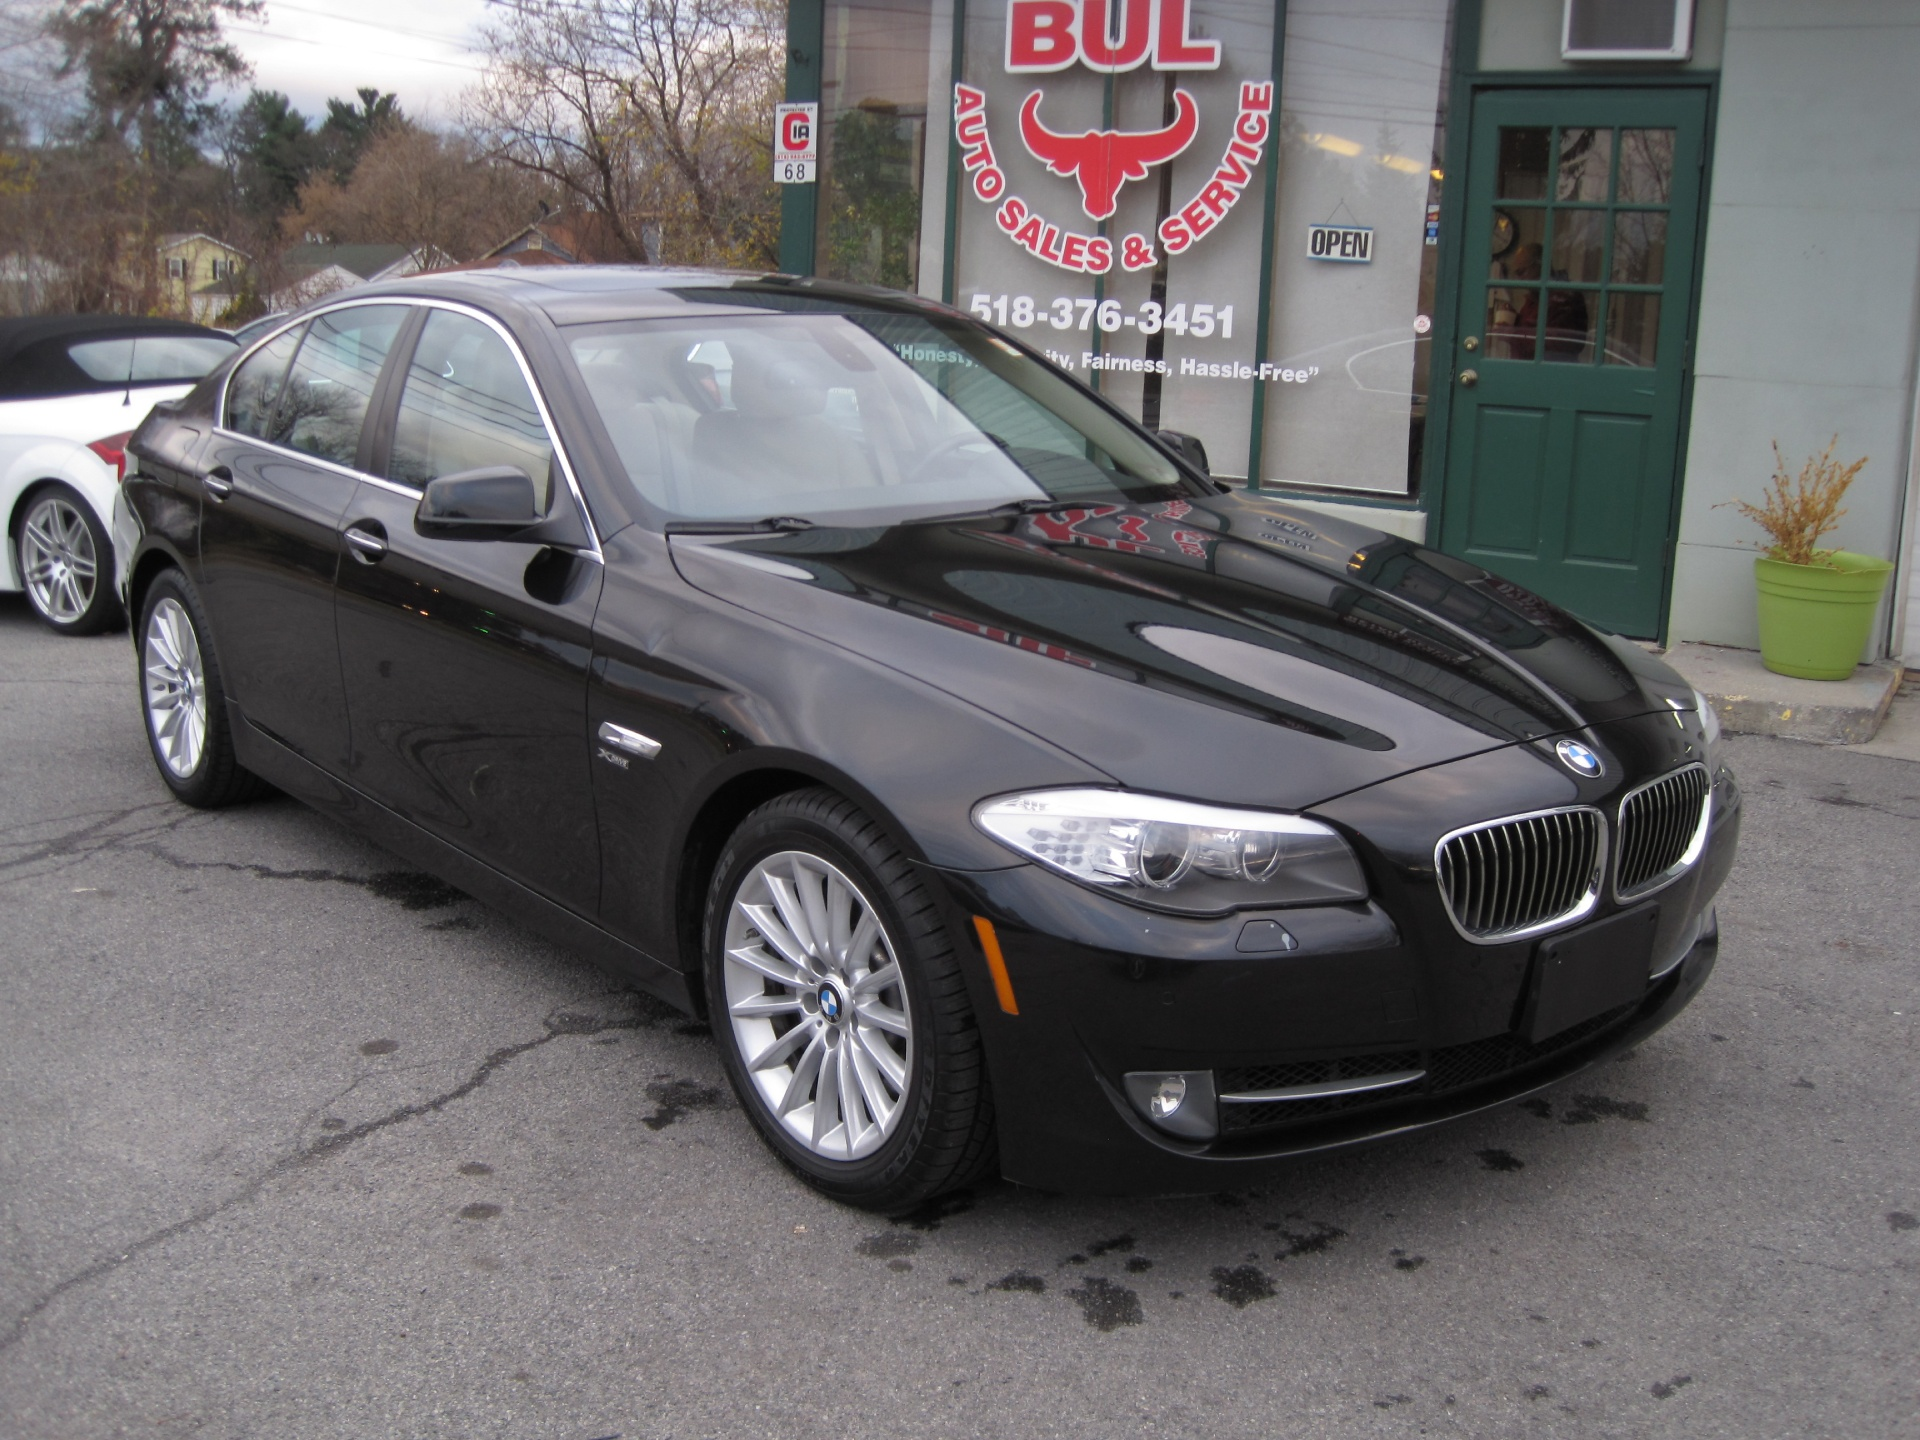 2011 bmw 5 series 535i xdrive 1 owner local new car trade in navigation stock 15165 for sale. Black Bedroom Furniture Sets. Home Design Ideas